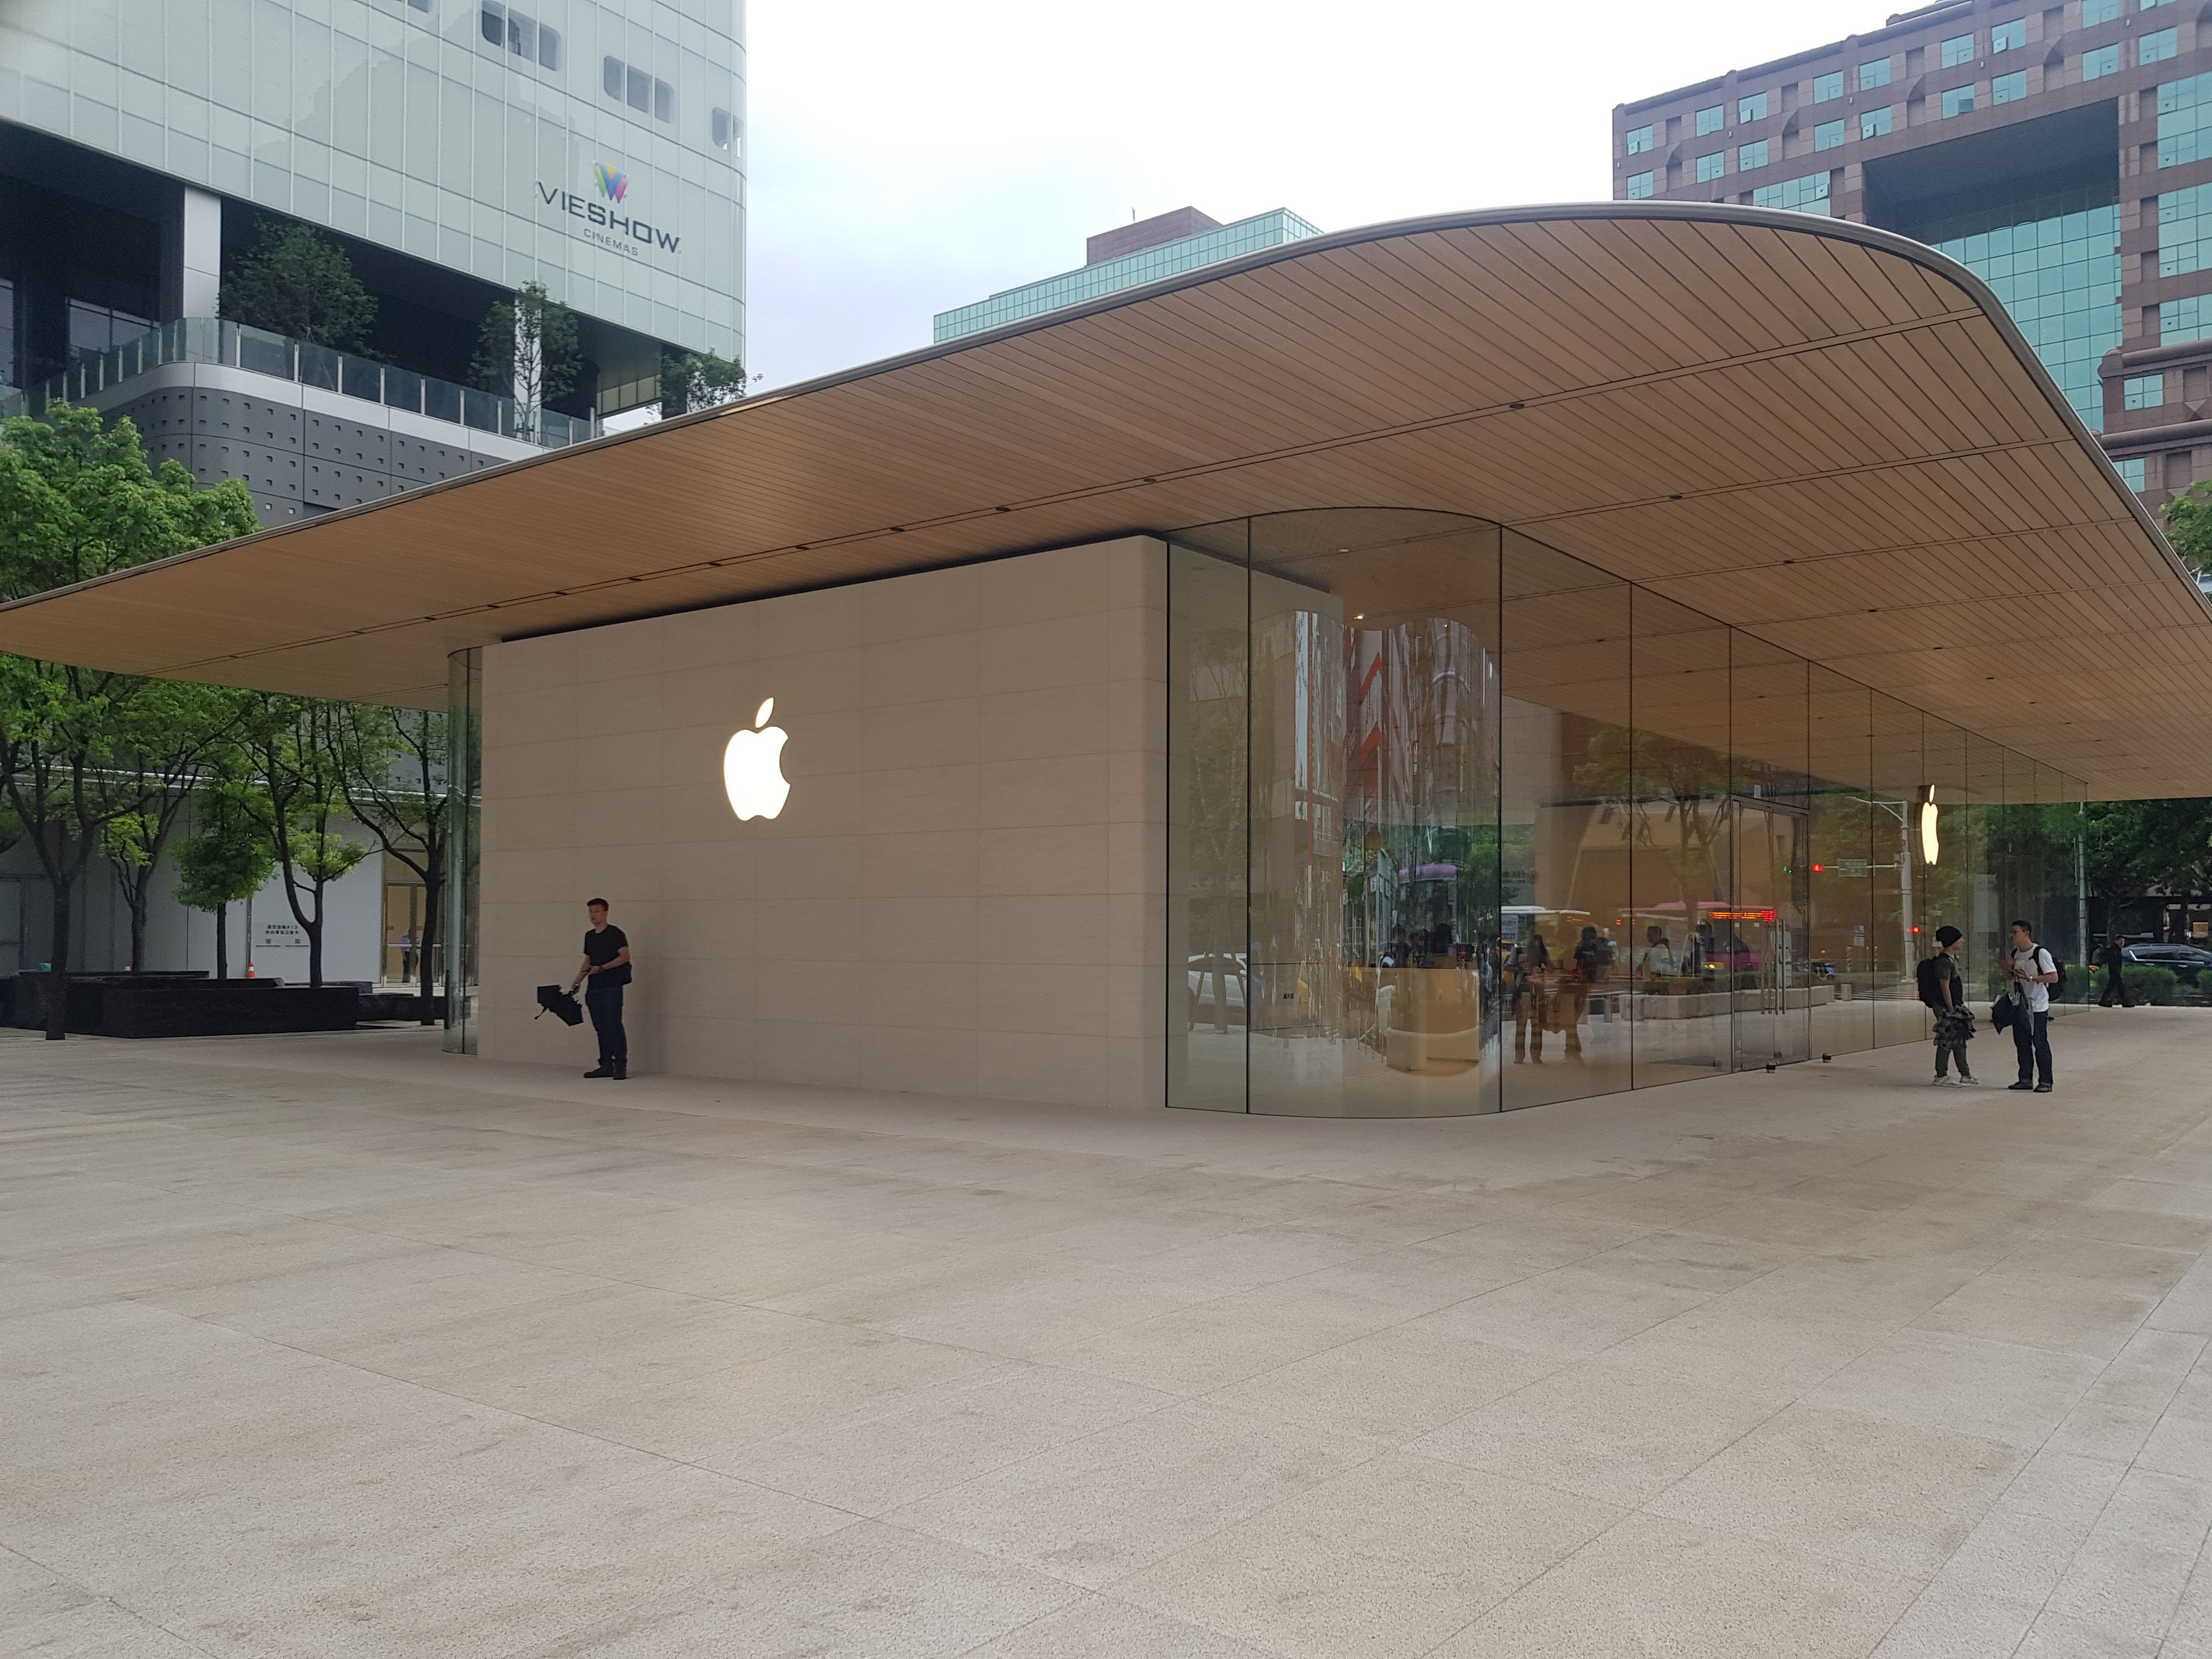 Is Apple (AAPL) Stock a Value Buy After 13% Drop From New Highs?